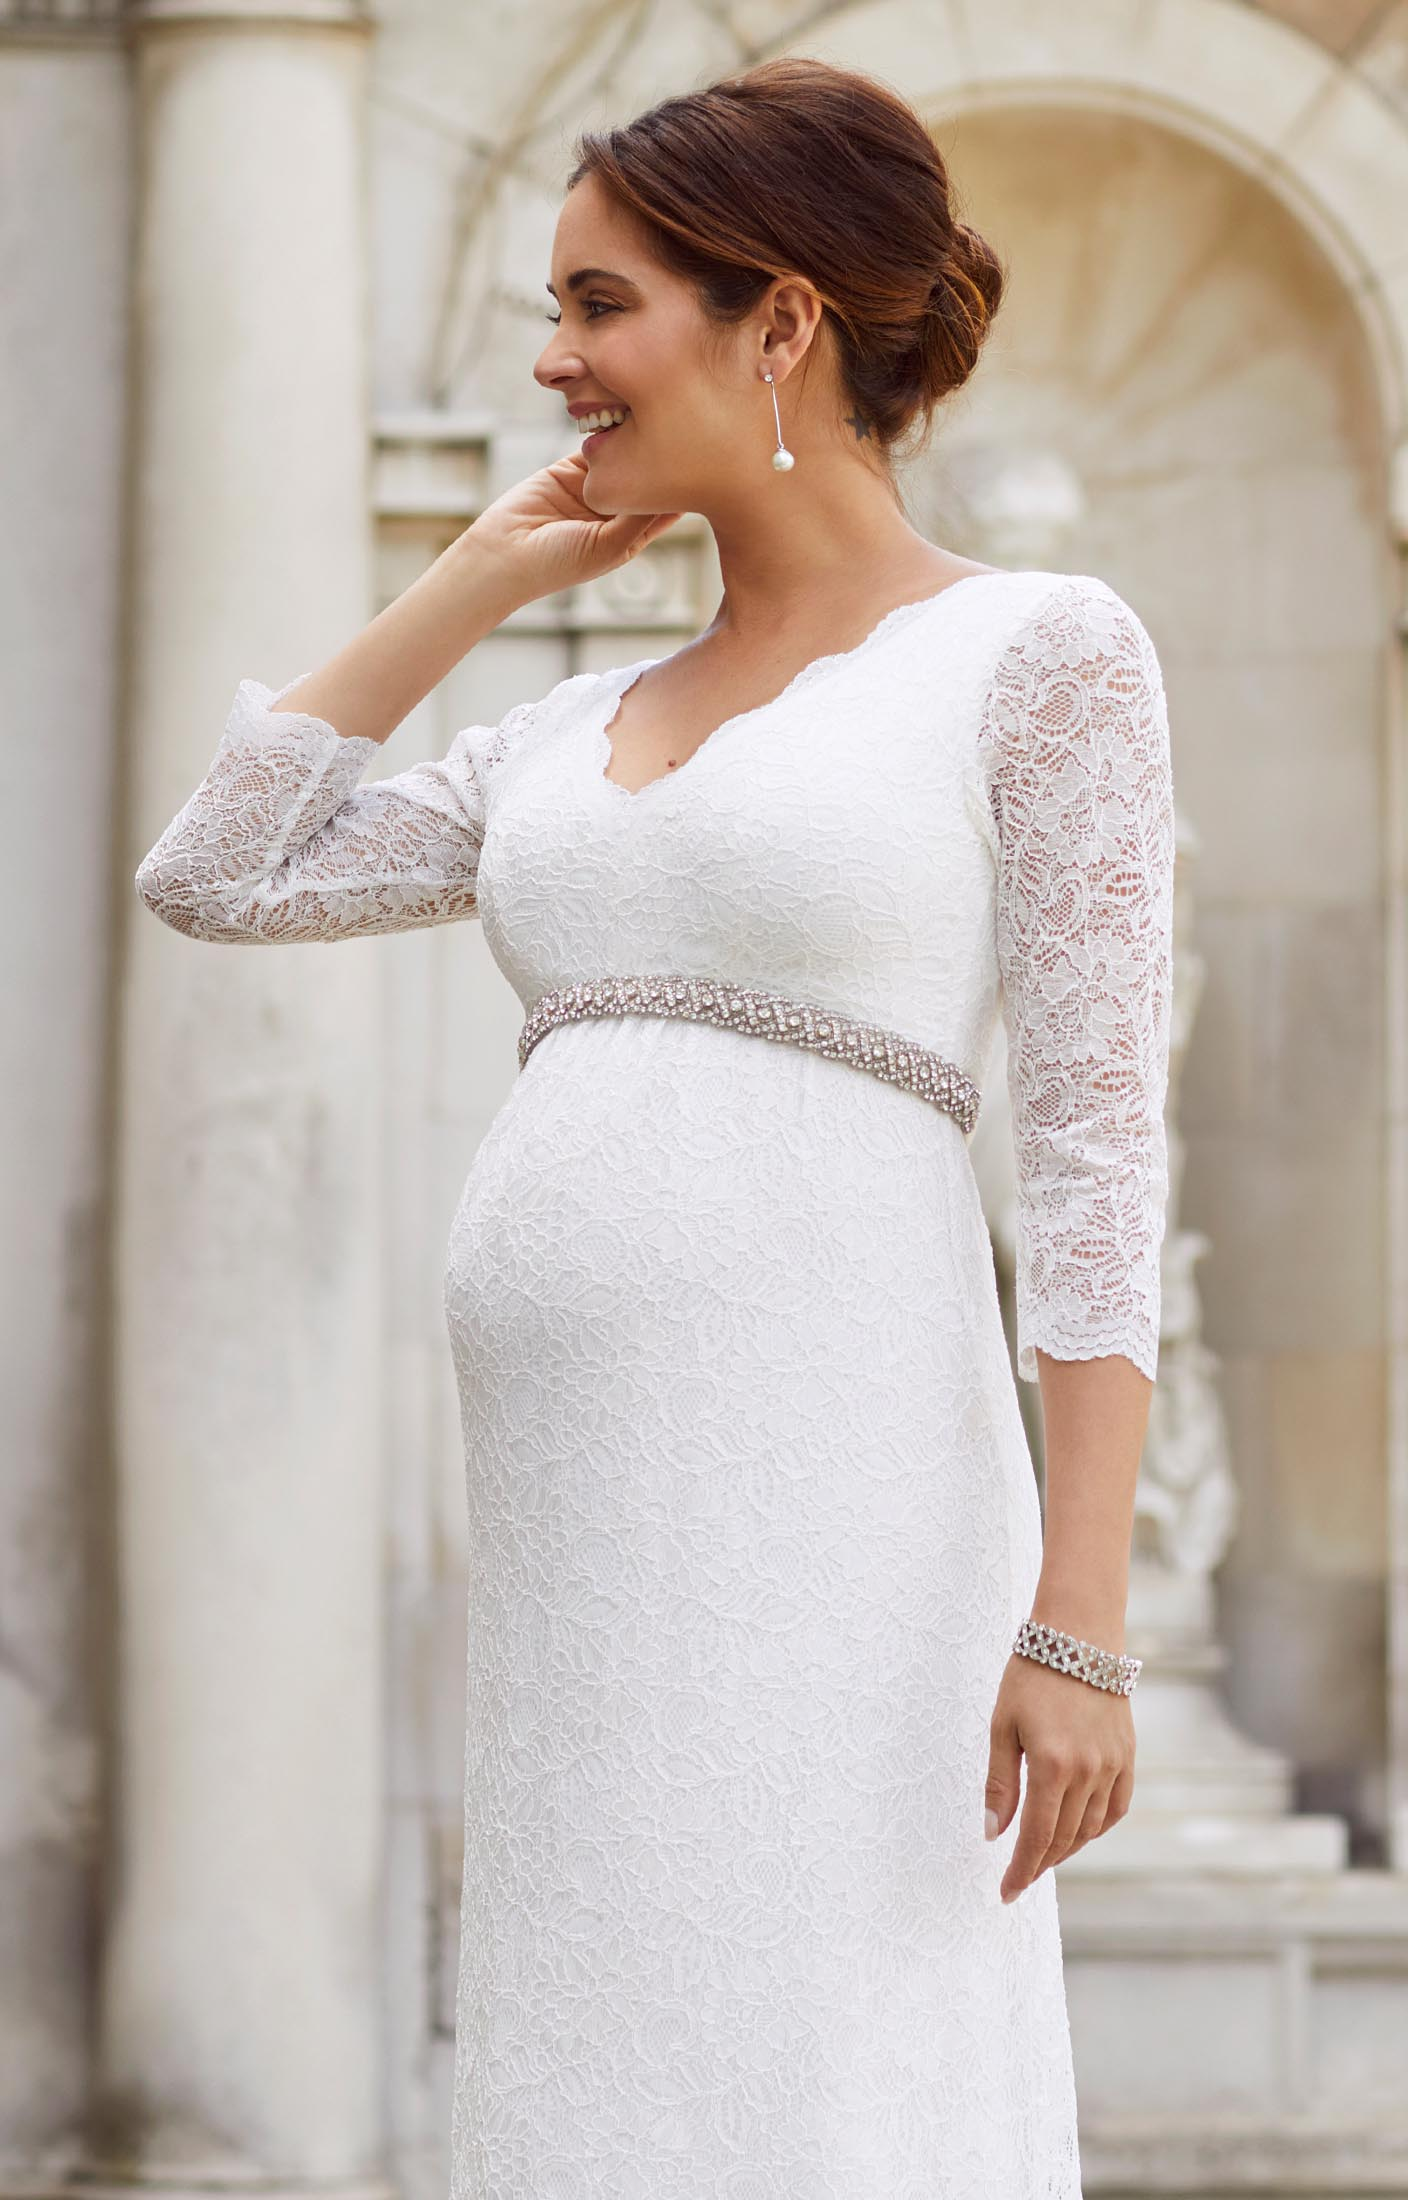 Chloe Lace Maternity Wedding Gown Ivory - Maternity Wedding Dresses ...